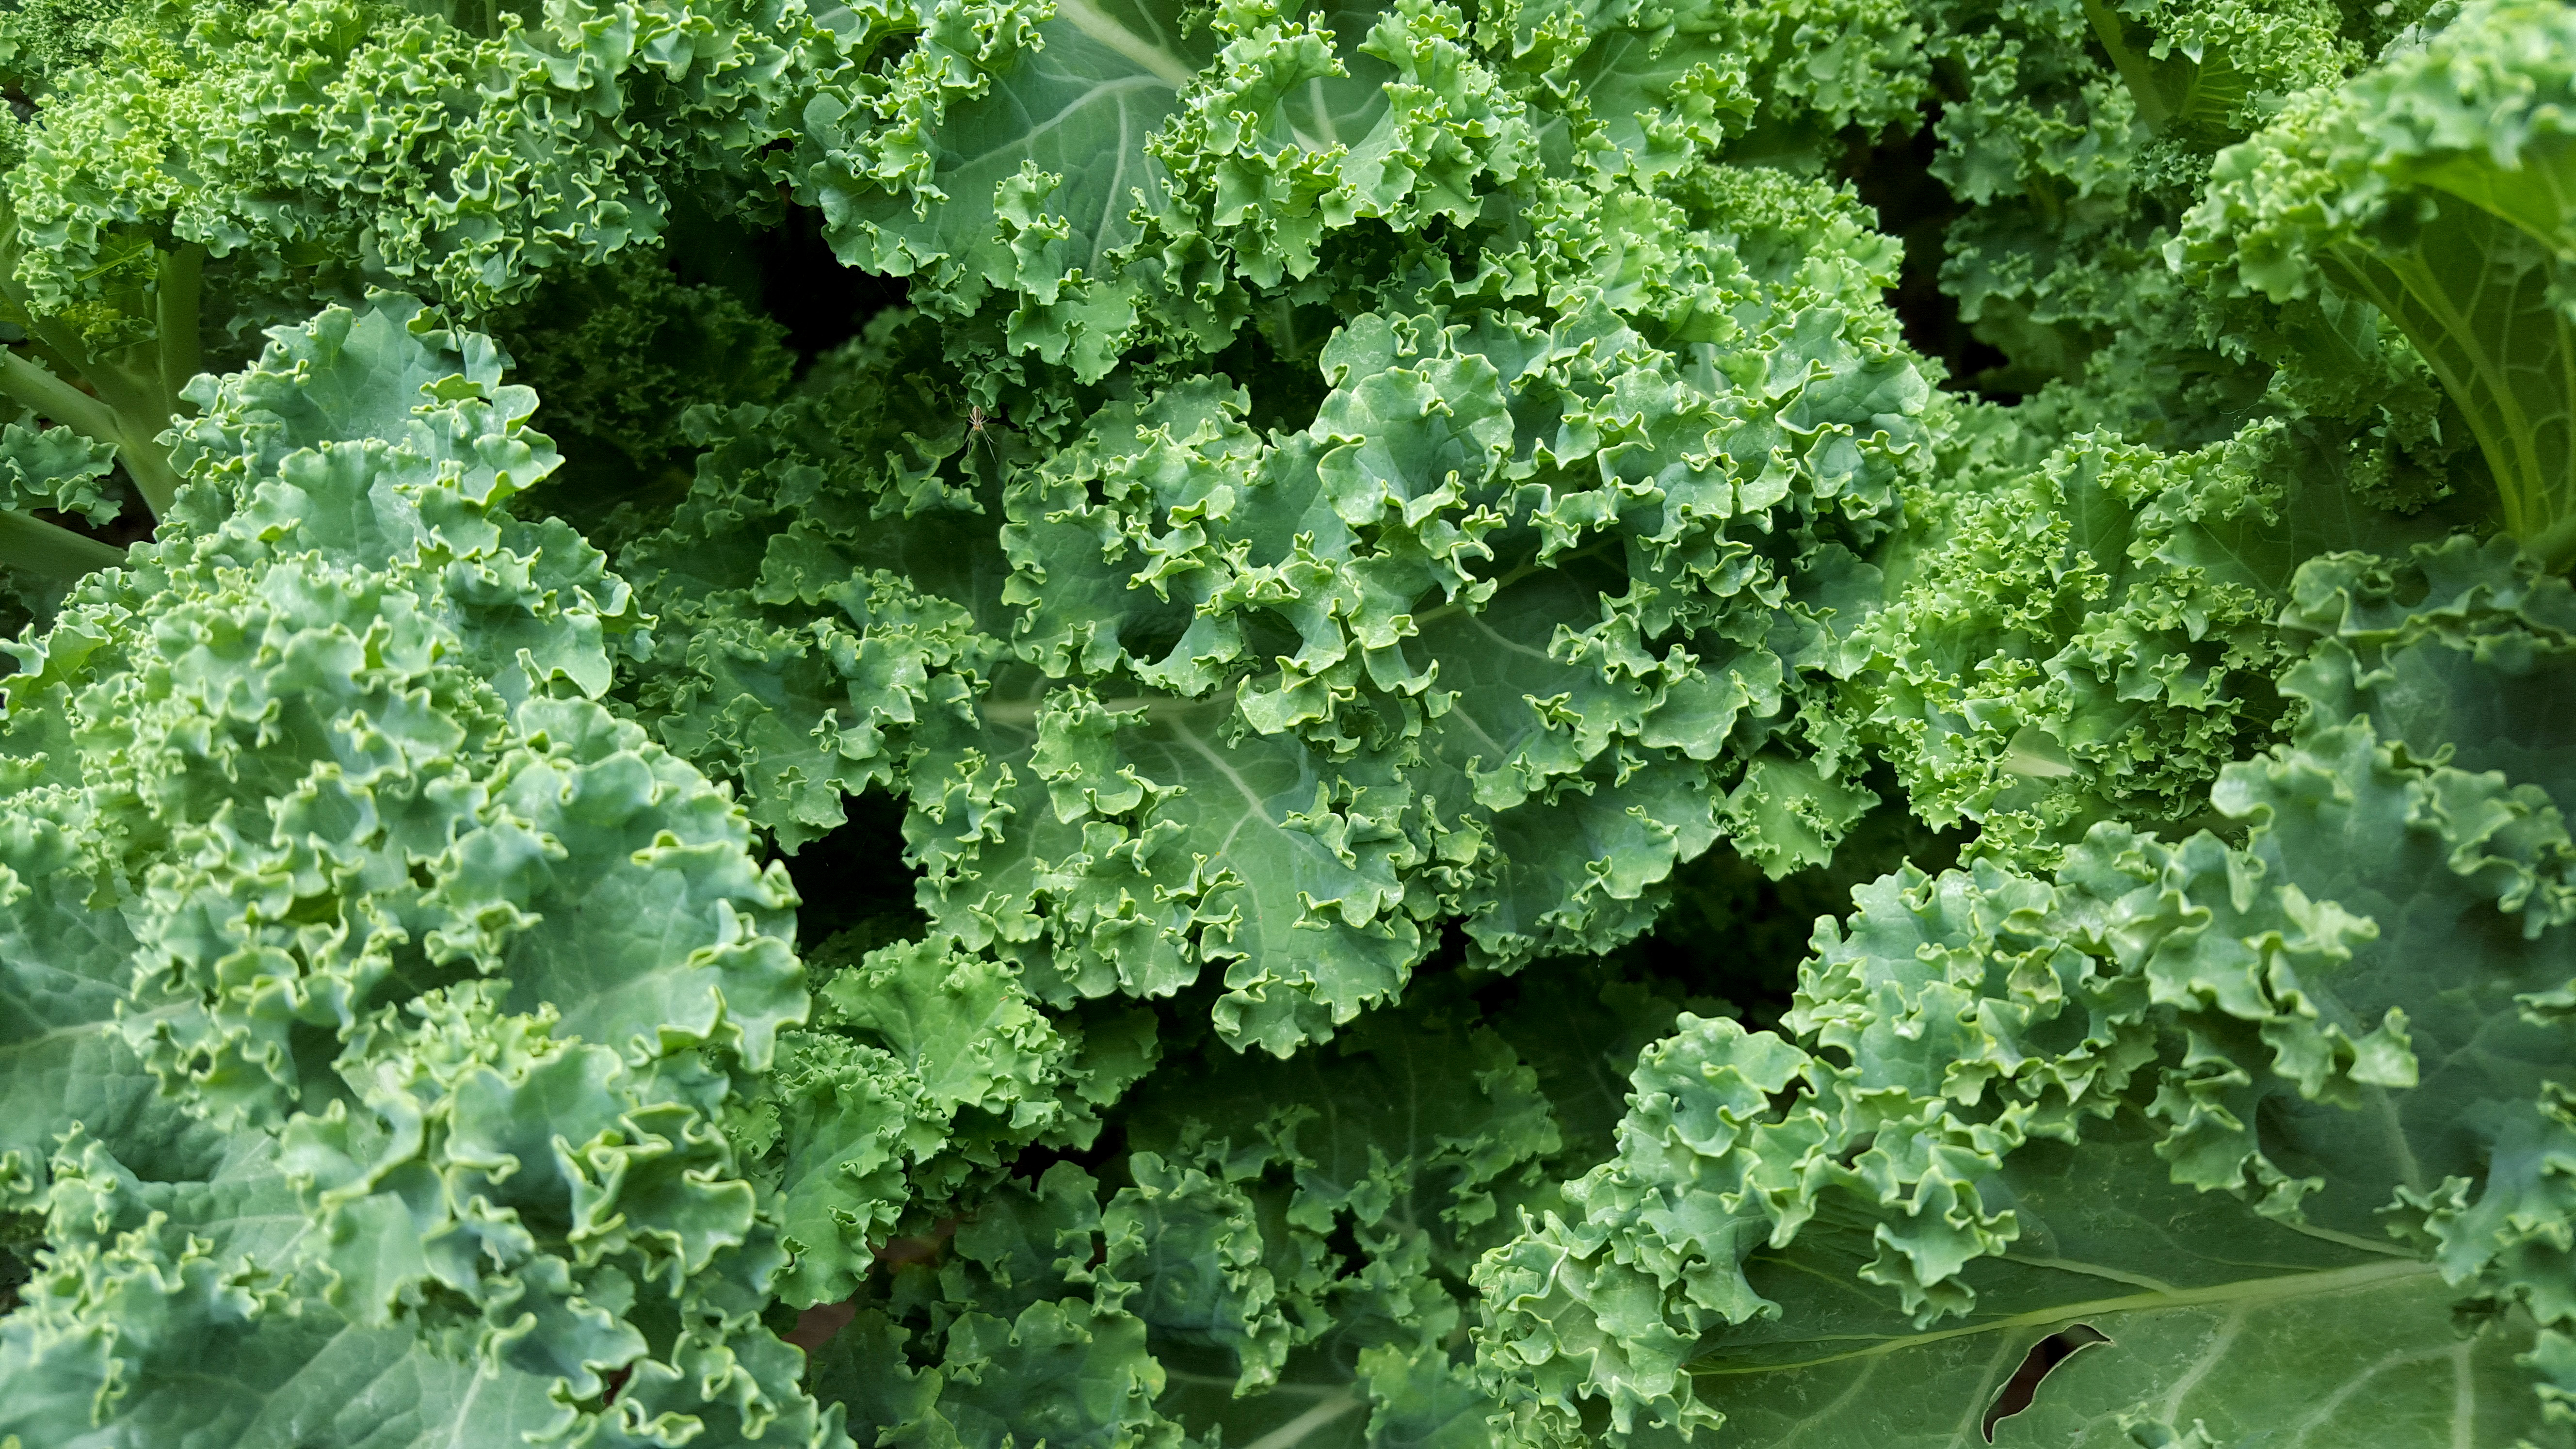 How to Grow Kale and Collards